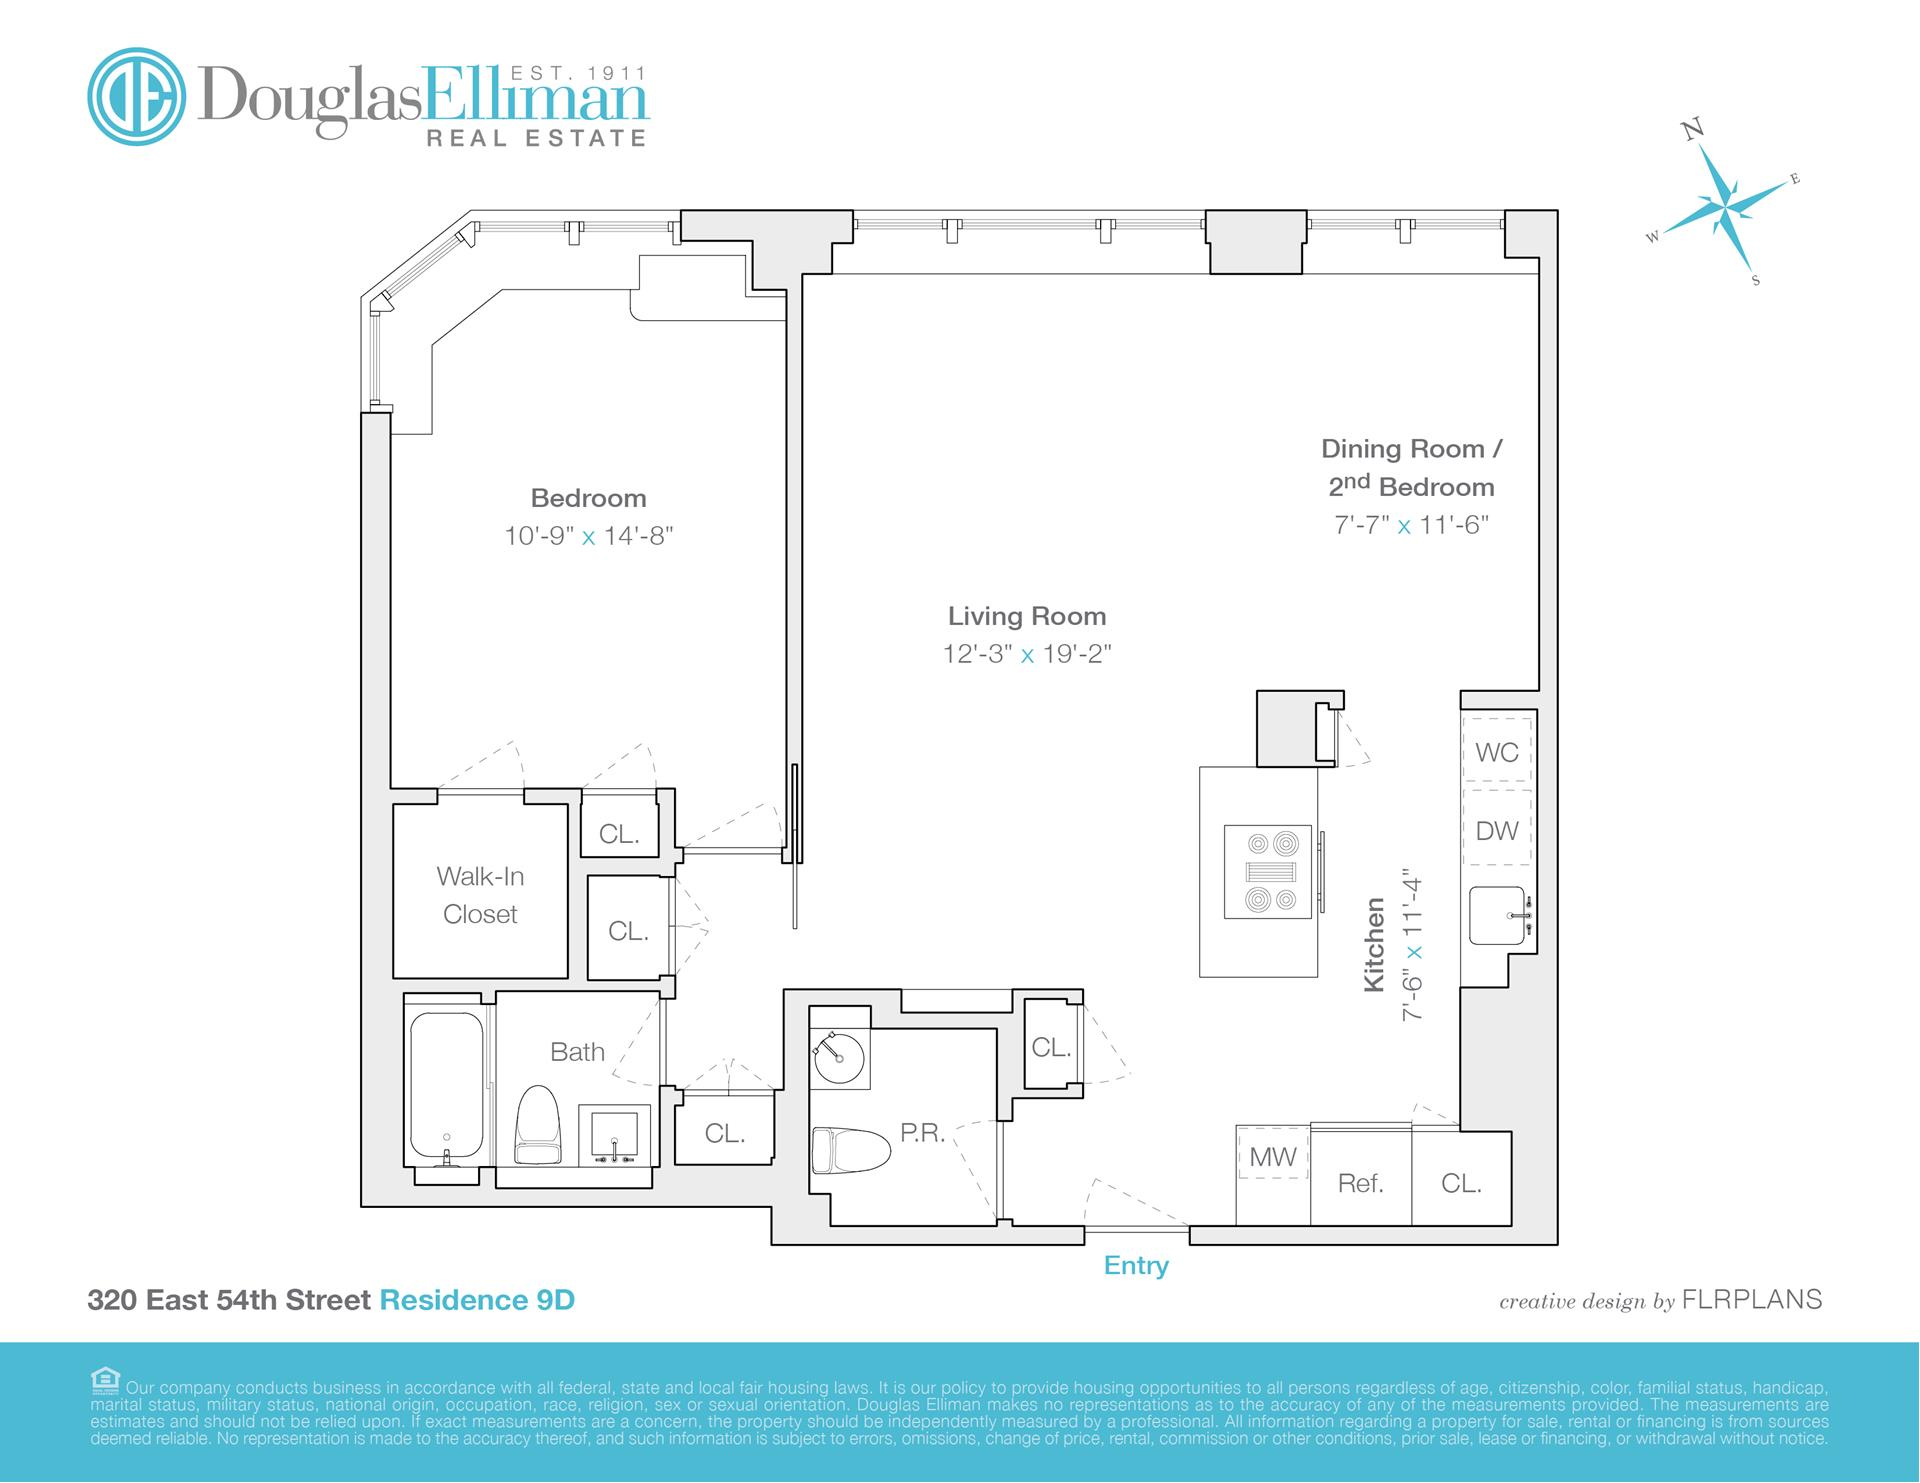 Floor plan of TUDOR TOWER, 320 East 54th St, 9D - Sutton Area, New York